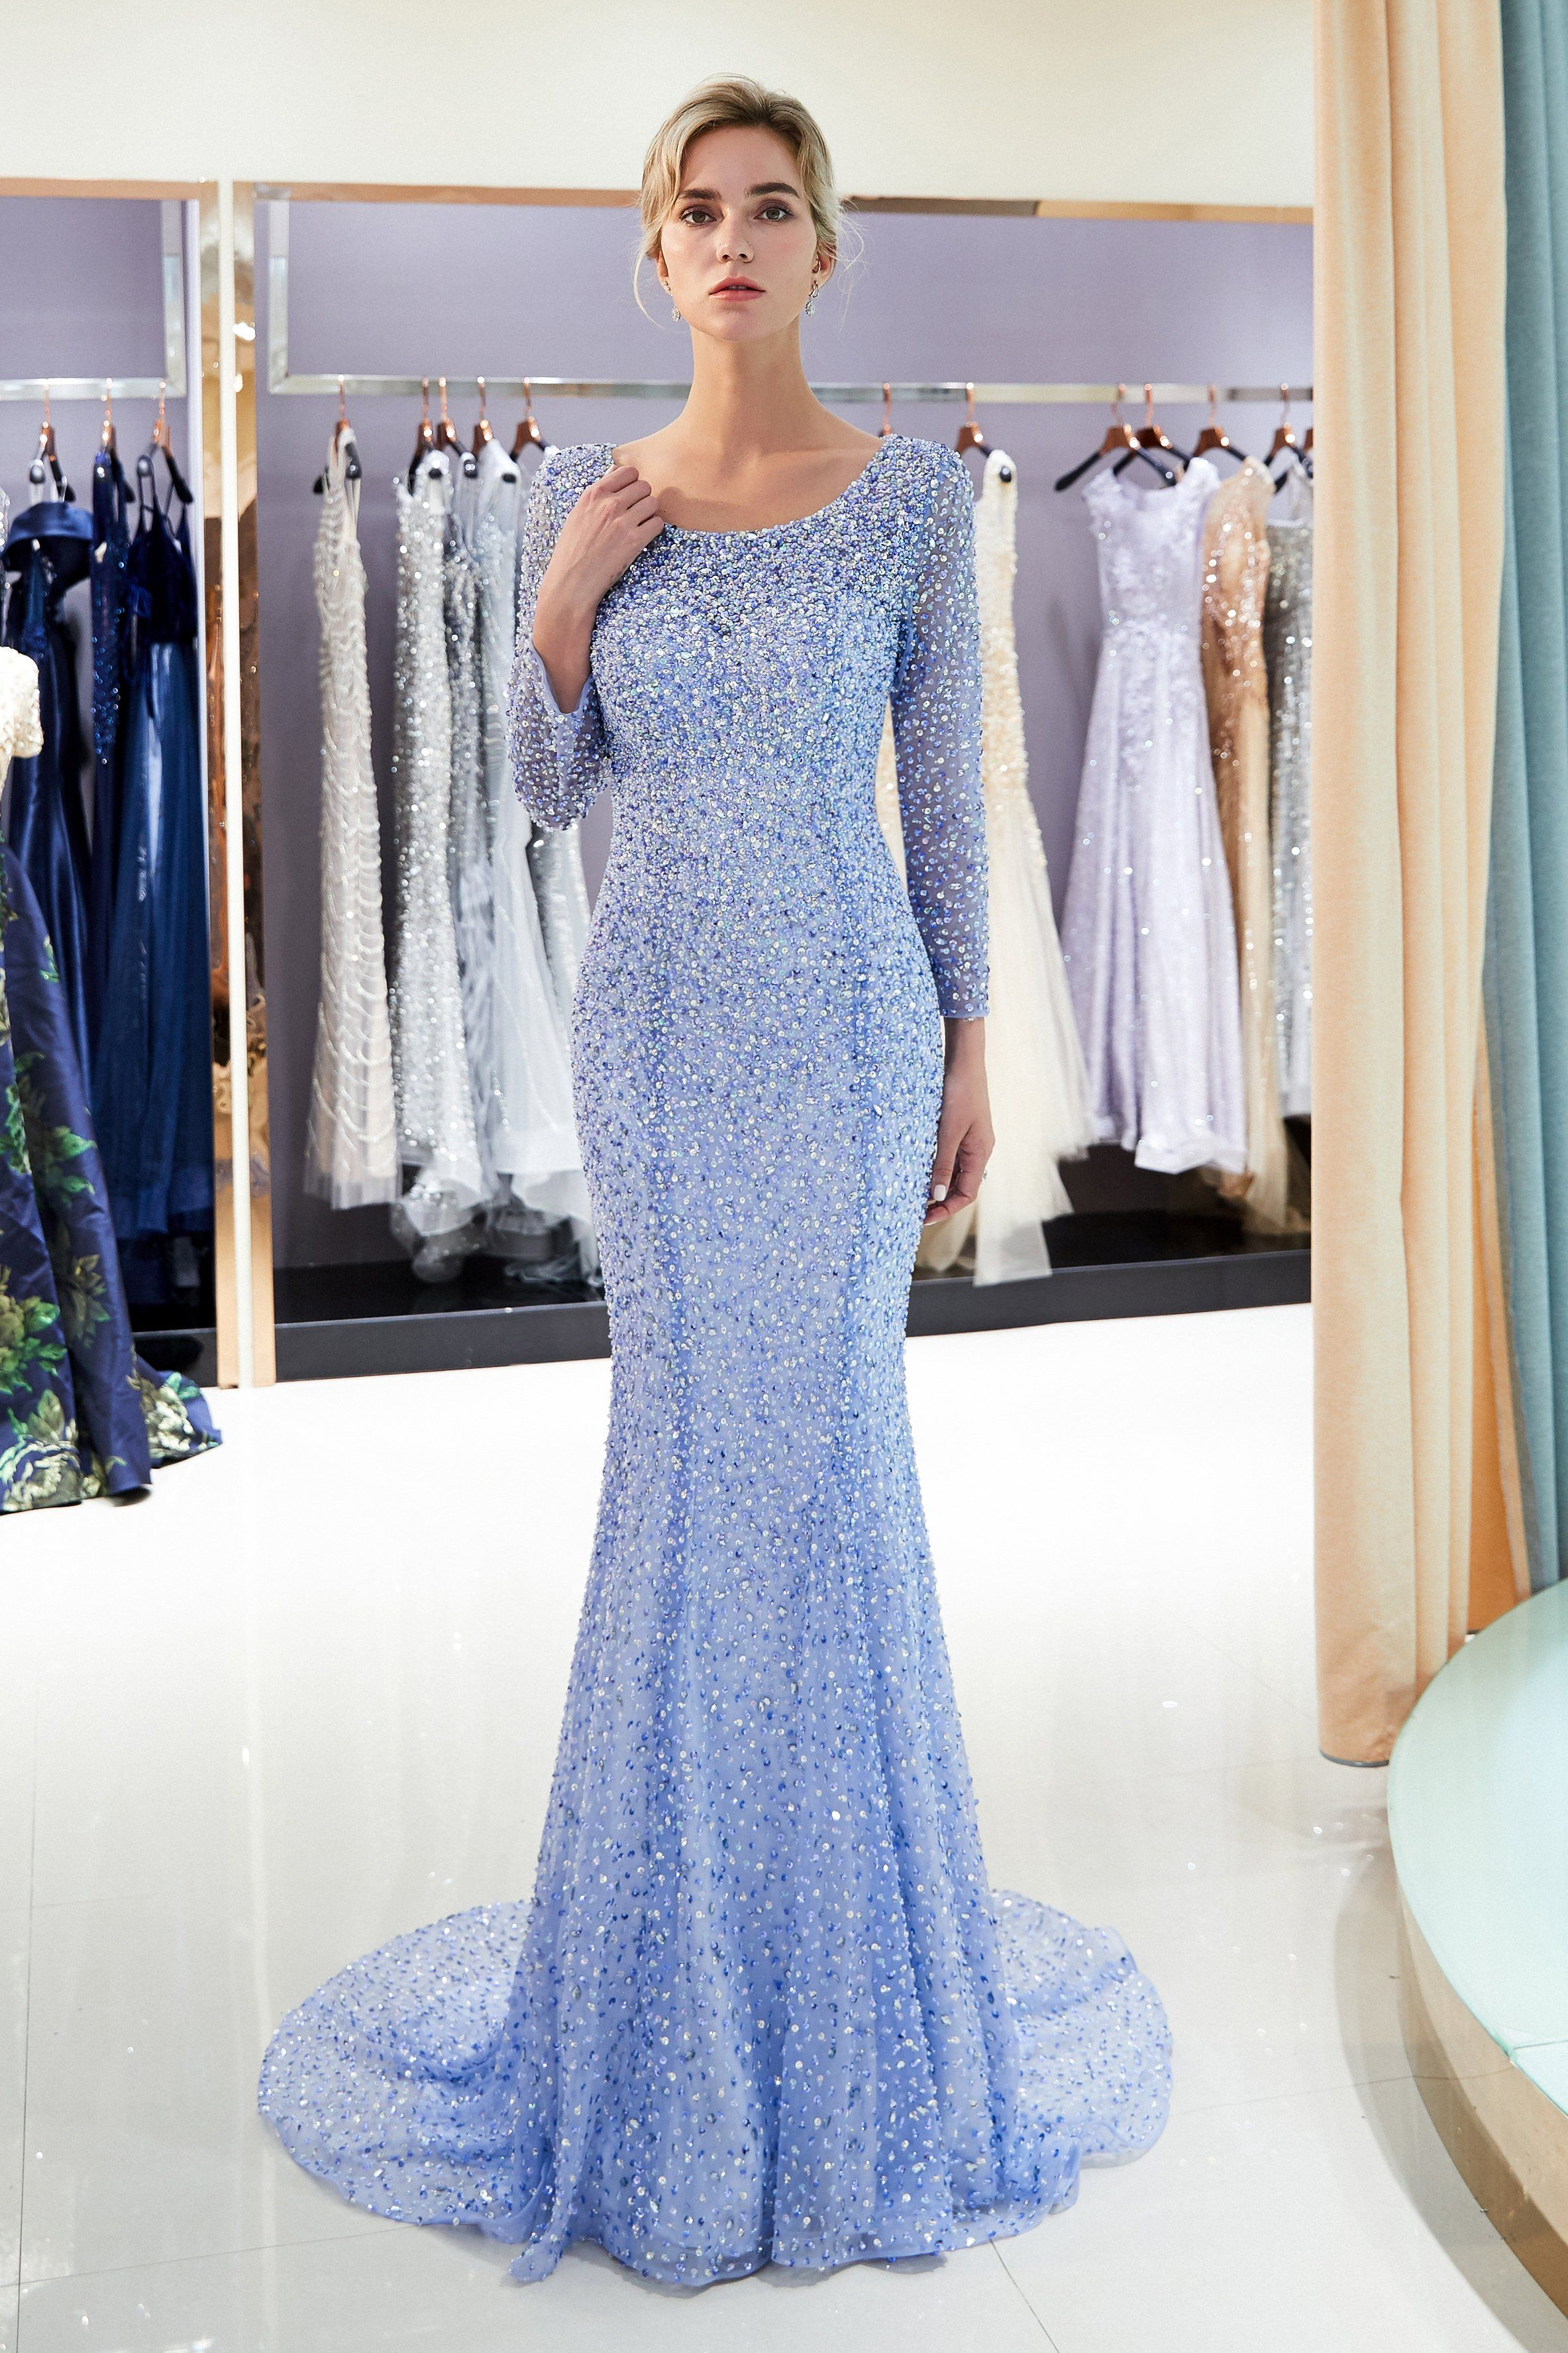 Long Sleeves Sequined Open Back Mermaid Periwinkle Blue Evening Dress Us 16 In 2021 Prom Dresses Long With Sleeves Prom Dresses With Sleeves Backless Evening Dress [ 3551 x 2367 Pixel ]